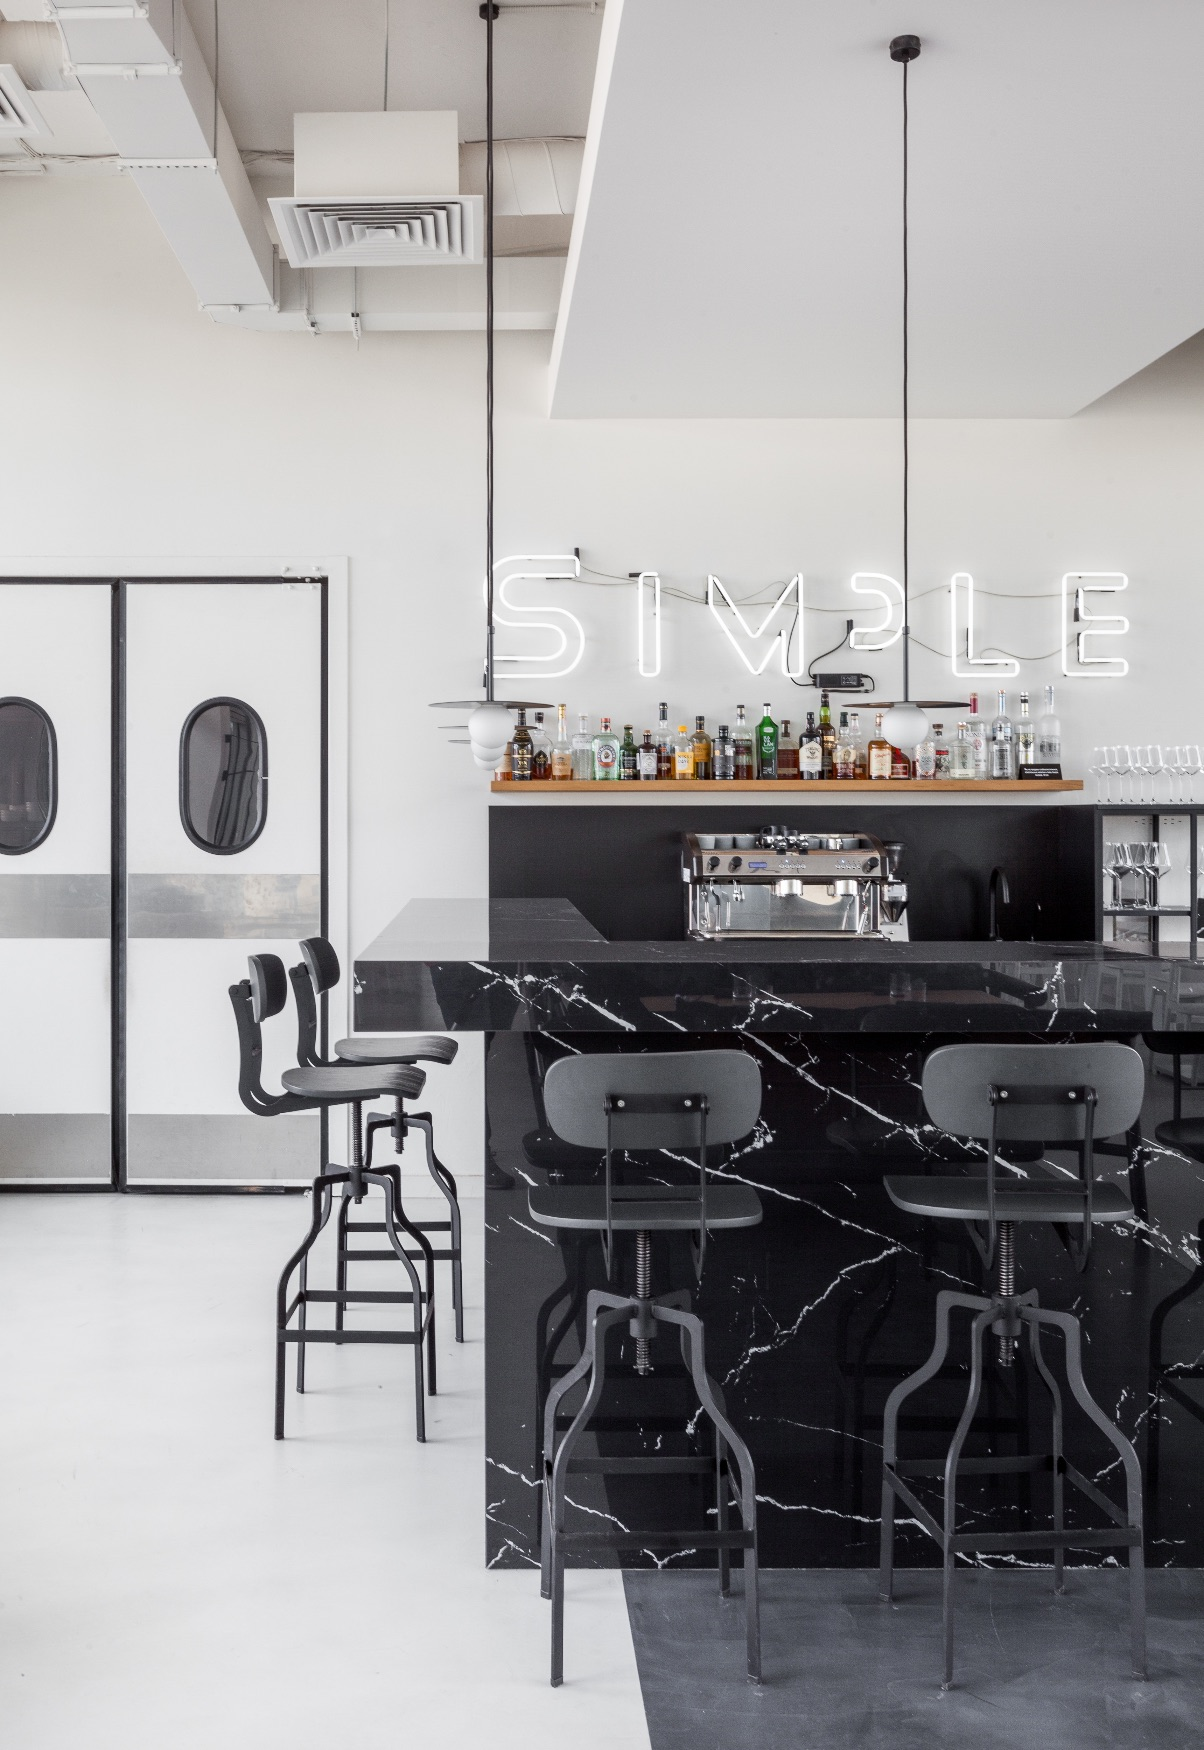 1_Simple Restaurant_Zrobym Architects_Inspirationist